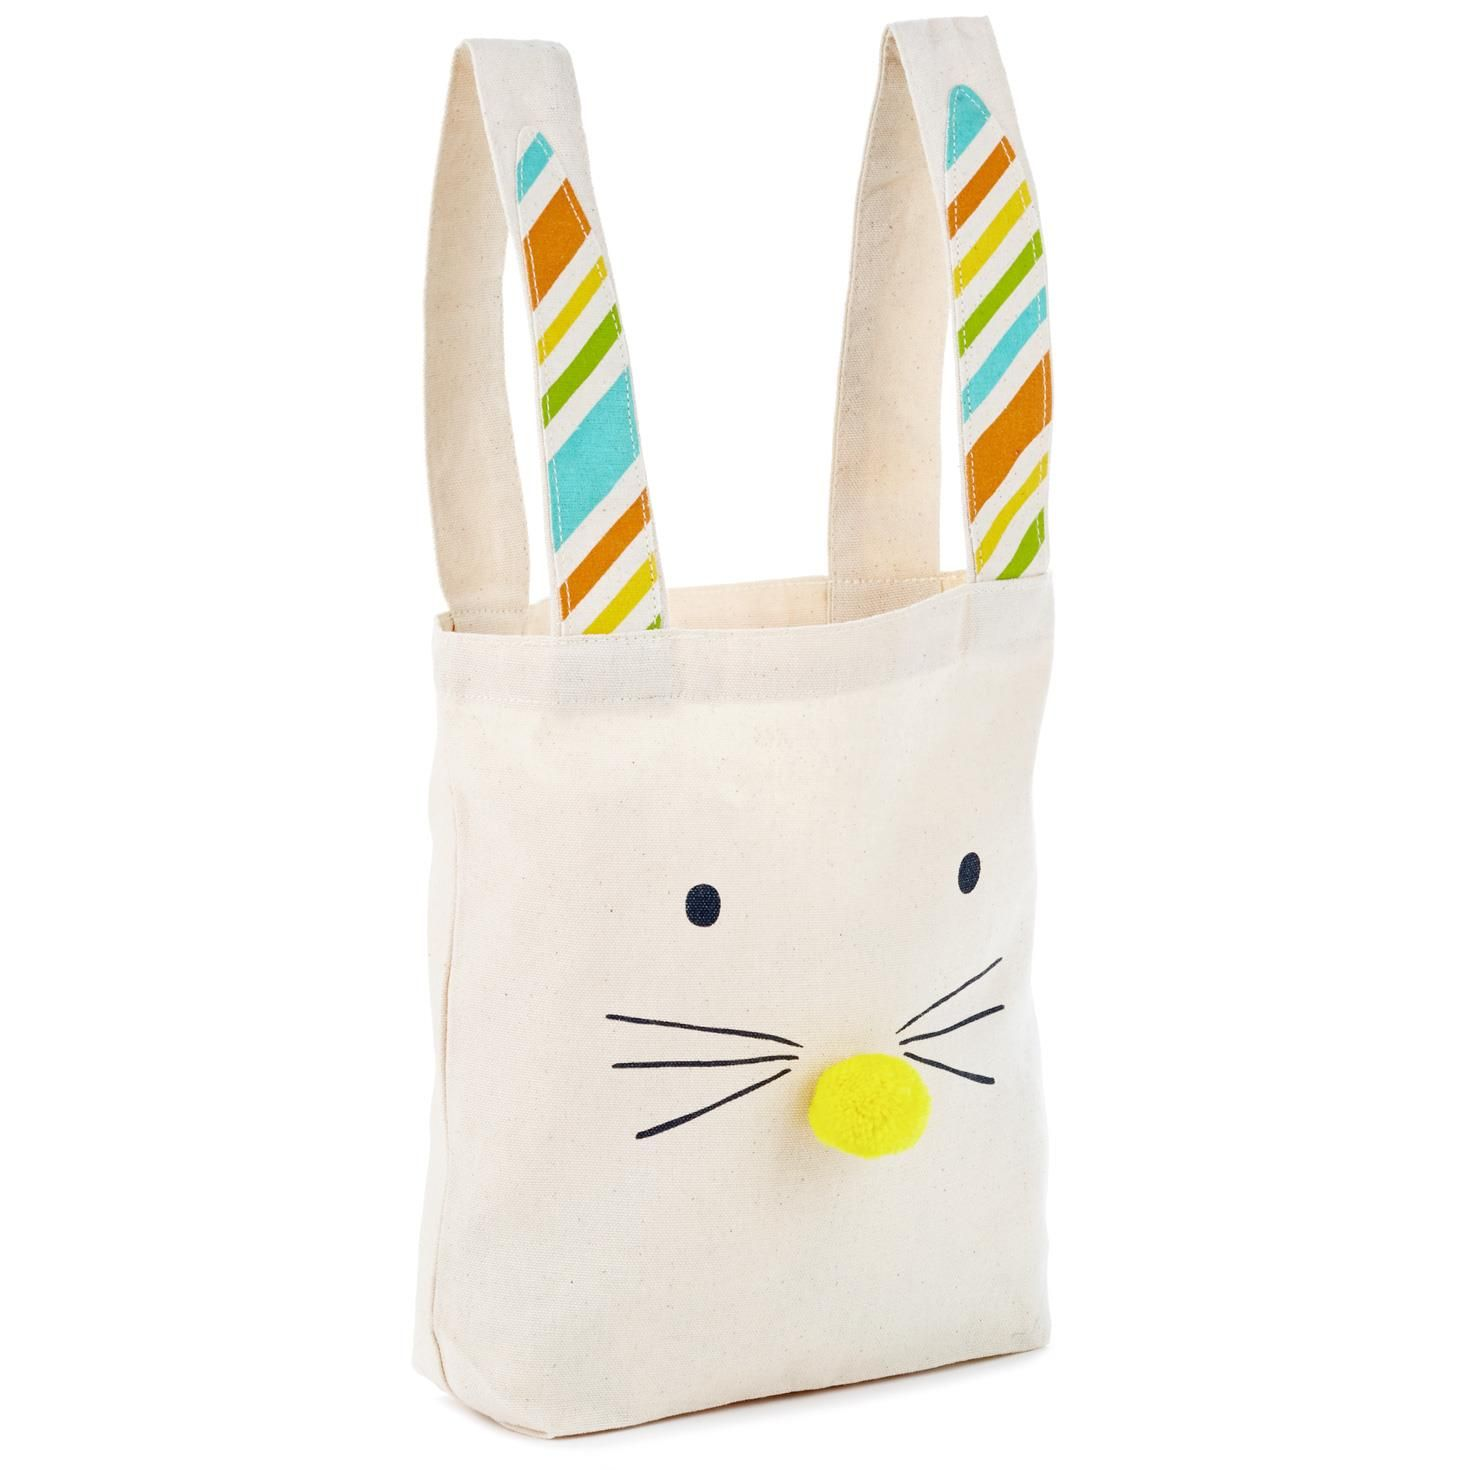 Fill this cute canvas bag with Easter treats—or take it along on your Easter egg hunts! Tote bag features a printed Easter Bunny design with fabric-lined ear handles and pom pom nose. Use this reusable fabric gift bag as a fun Easter basket alternative, or fill with spring-scented candles, printed tea towels or seasonal decor to create an Easter party hostess gift that's sure to be appreciated.